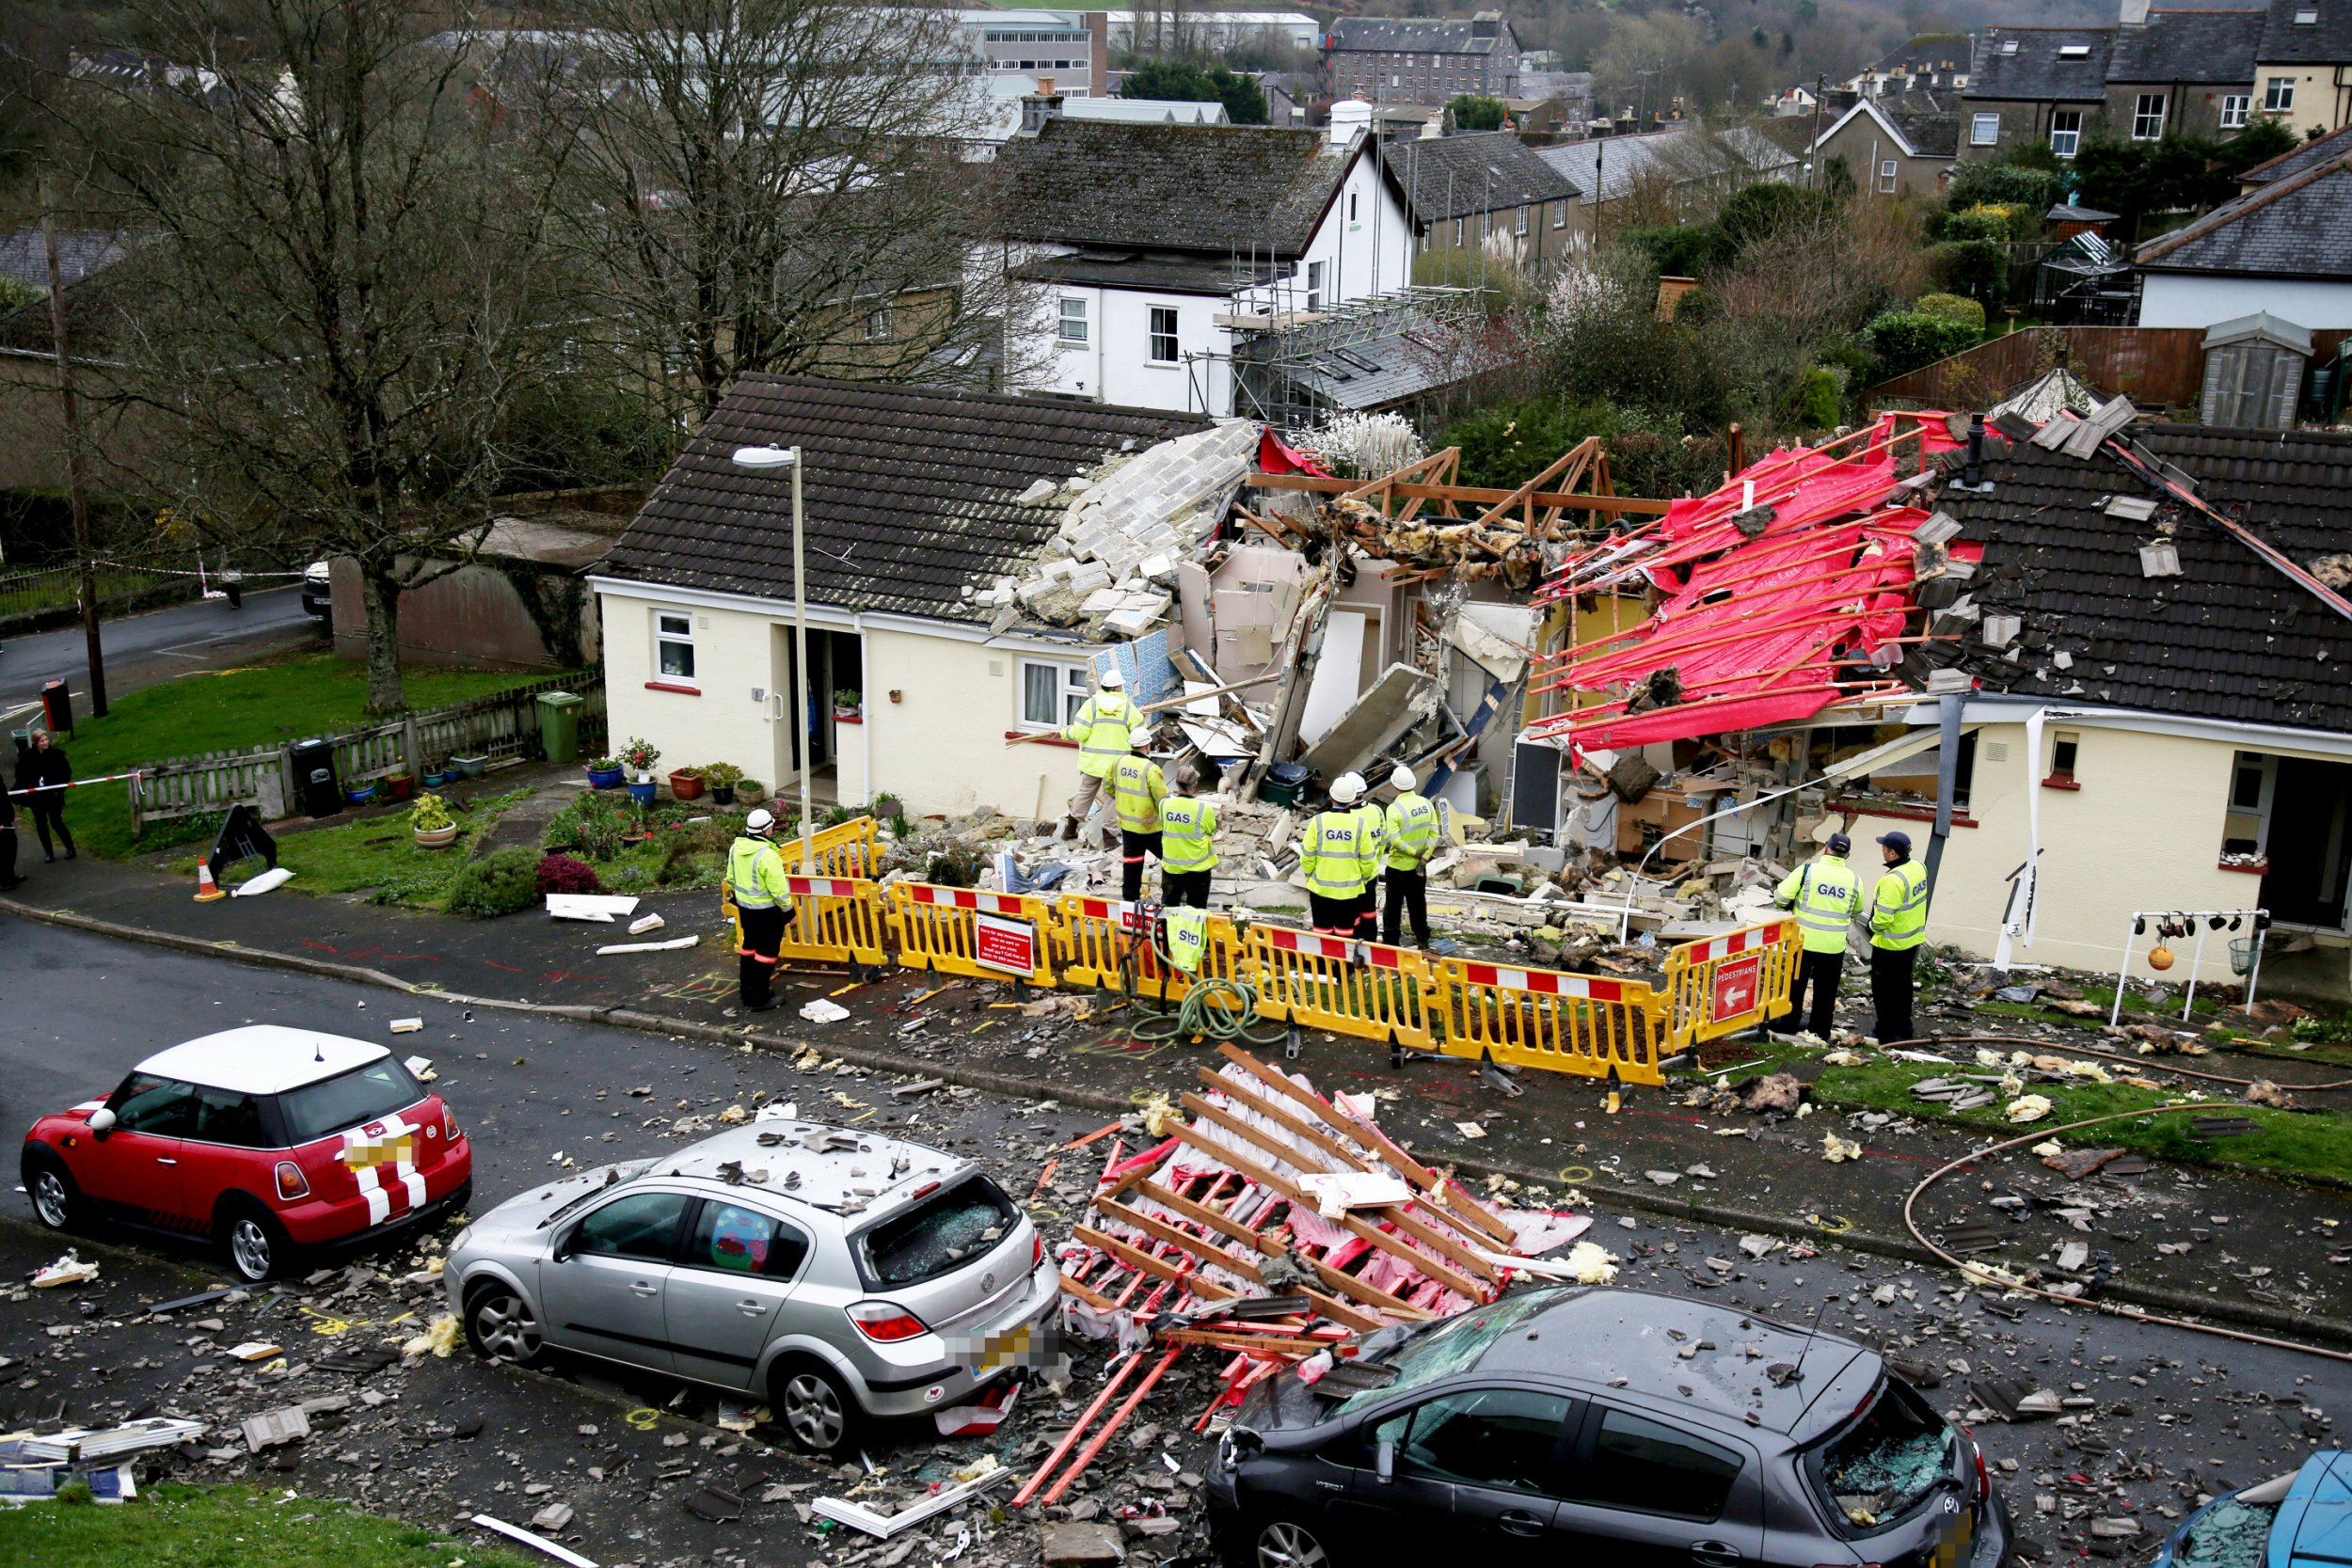 """Gas Explosion, Barn Park, Buckfastleigh. March 23, 2019. A pensioner had a miracle escape after a suspected gas explosion destroyed her bungalow - blowing off the walls and the roof. See SWNS story SWBRgas. Locals said the woman in her 70s walked out of the wreckage with the help of a young neighbour who heard the blast in Buckfastleigh, Devon, at around 8am this morning (Sat). Photos show the home was totally destroyed, with bricks and other debris littering the road. The woman is being treated in hospital for """"significant burns"""" while another person is being treated for minor injuries, police said. Neighbour Tom Hall, who lives 100ft from the blasted property in Barn Park, said the fact that the woman survived was a miracle."""